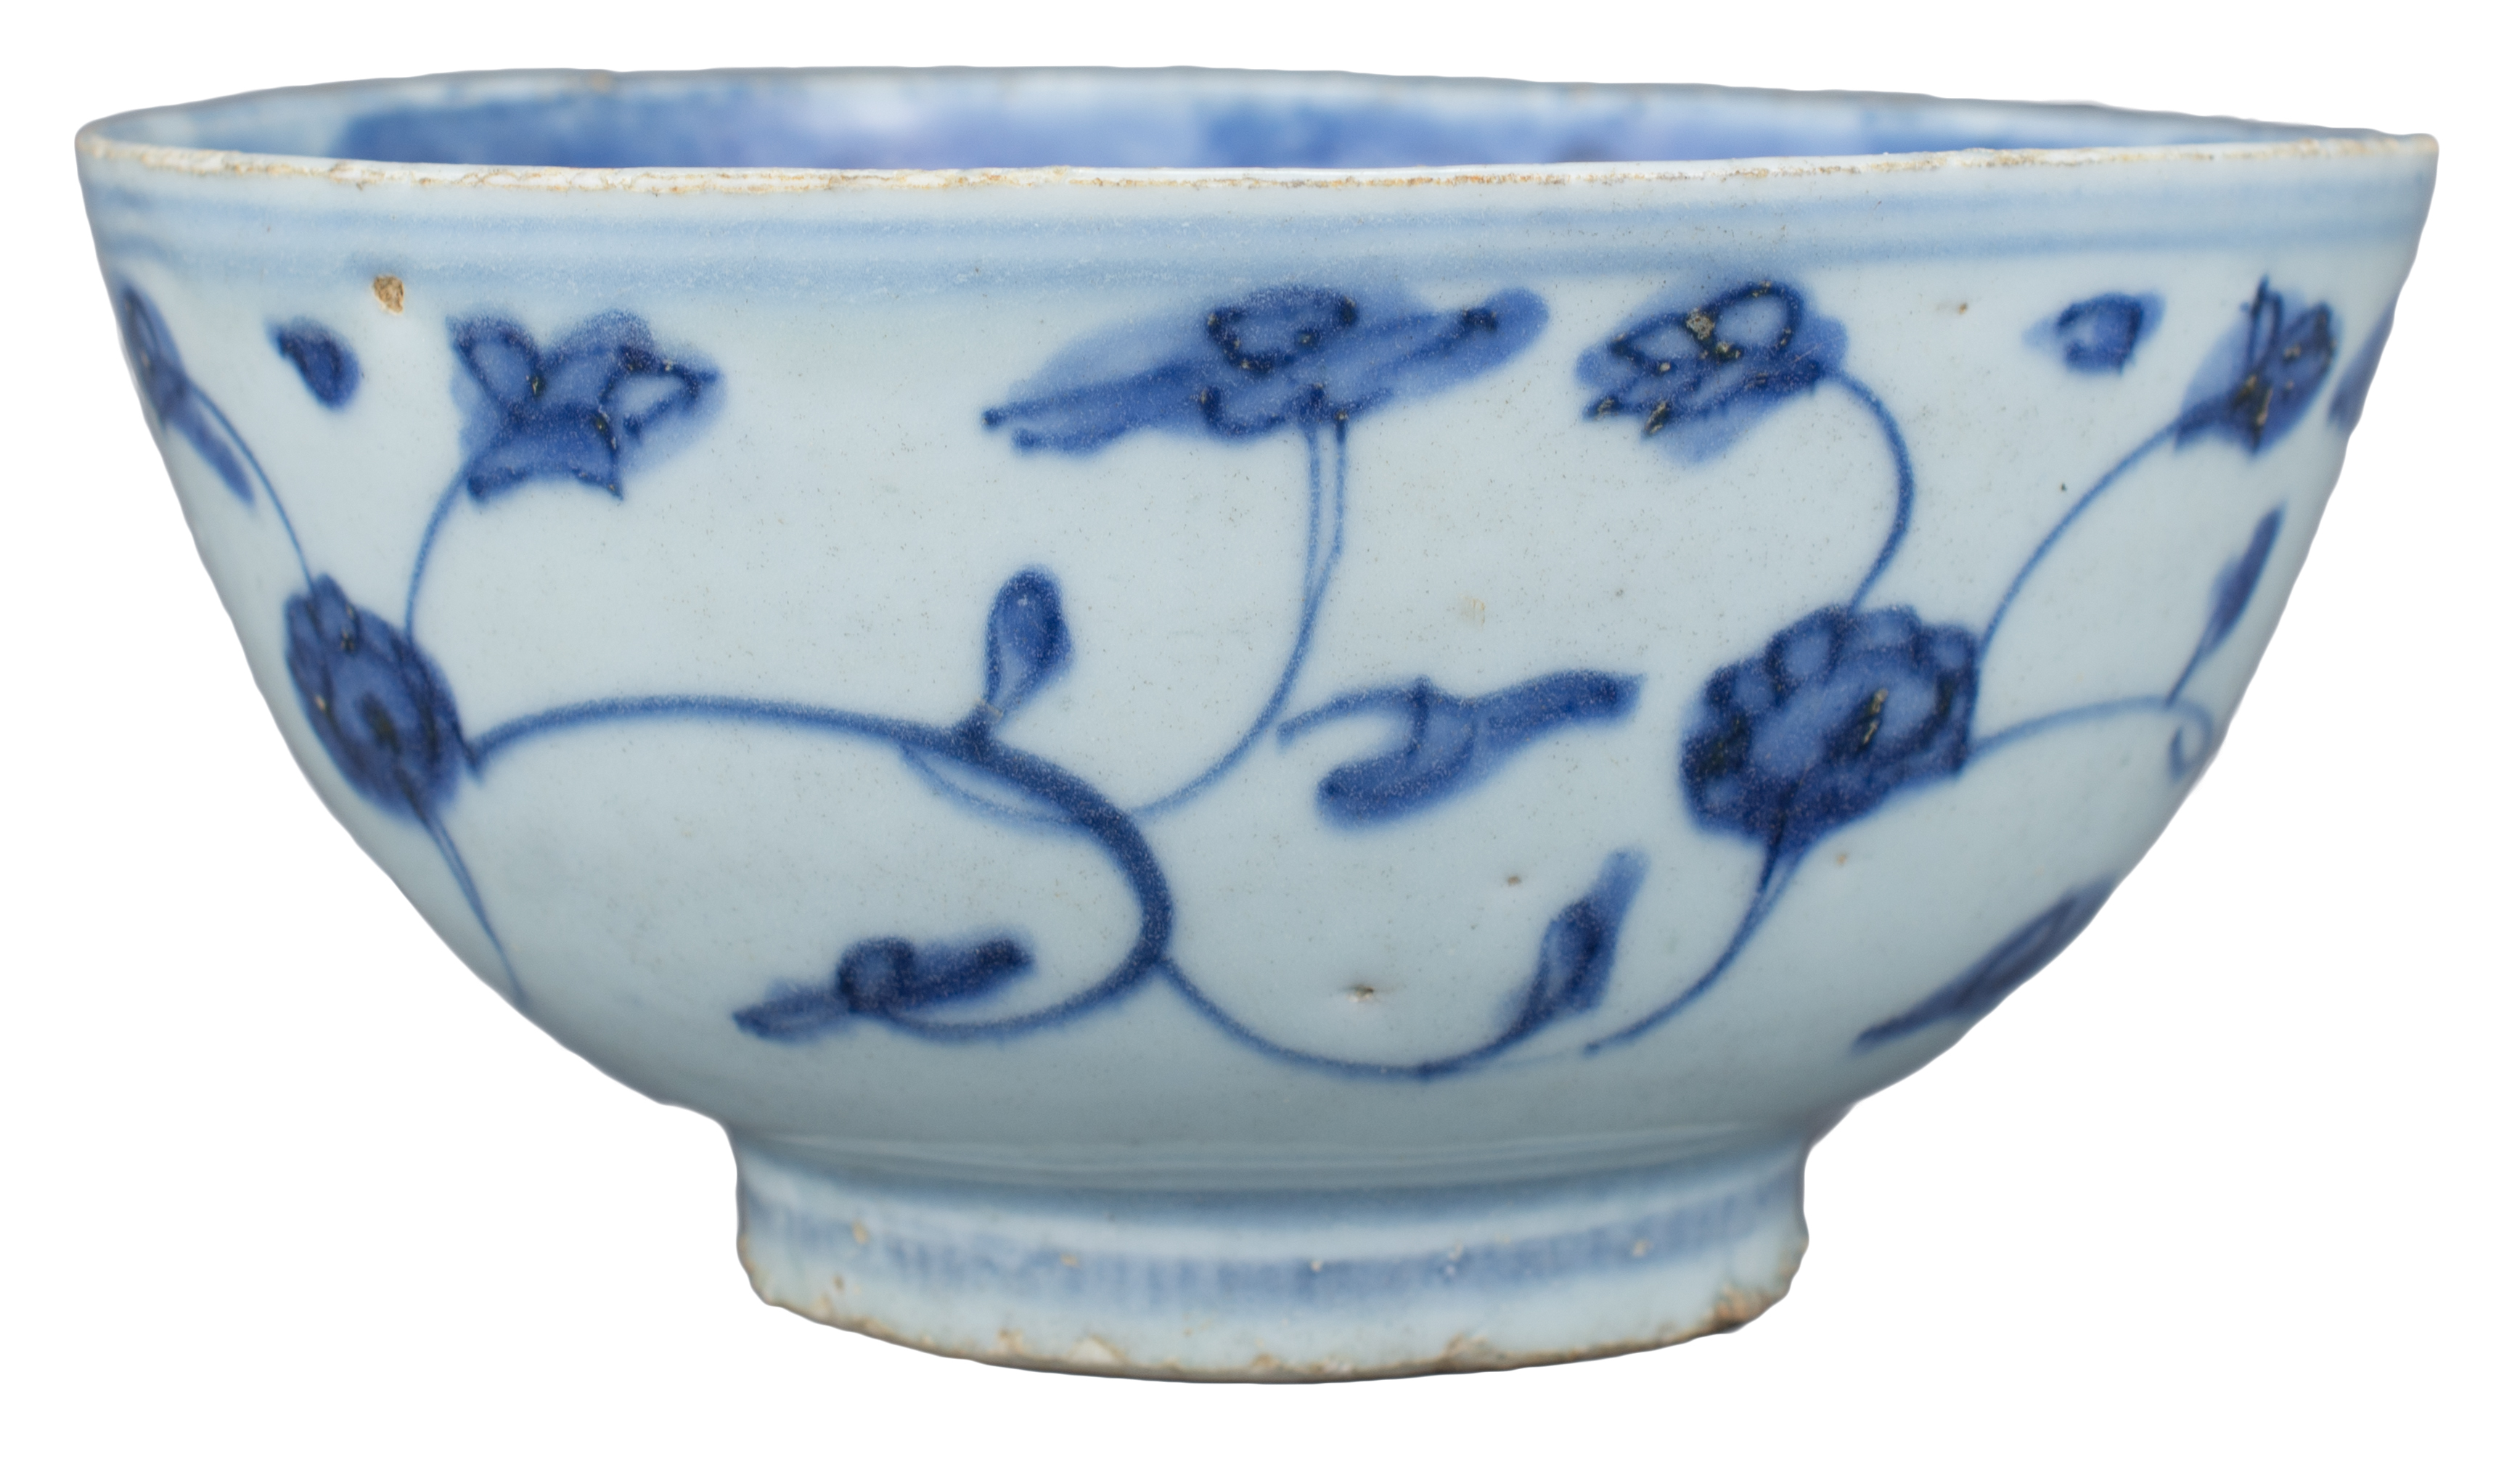 Lot 8 - A Fine Chinese Ming Dynasty Blue & White Porcelain Bowl – Jiajing reign